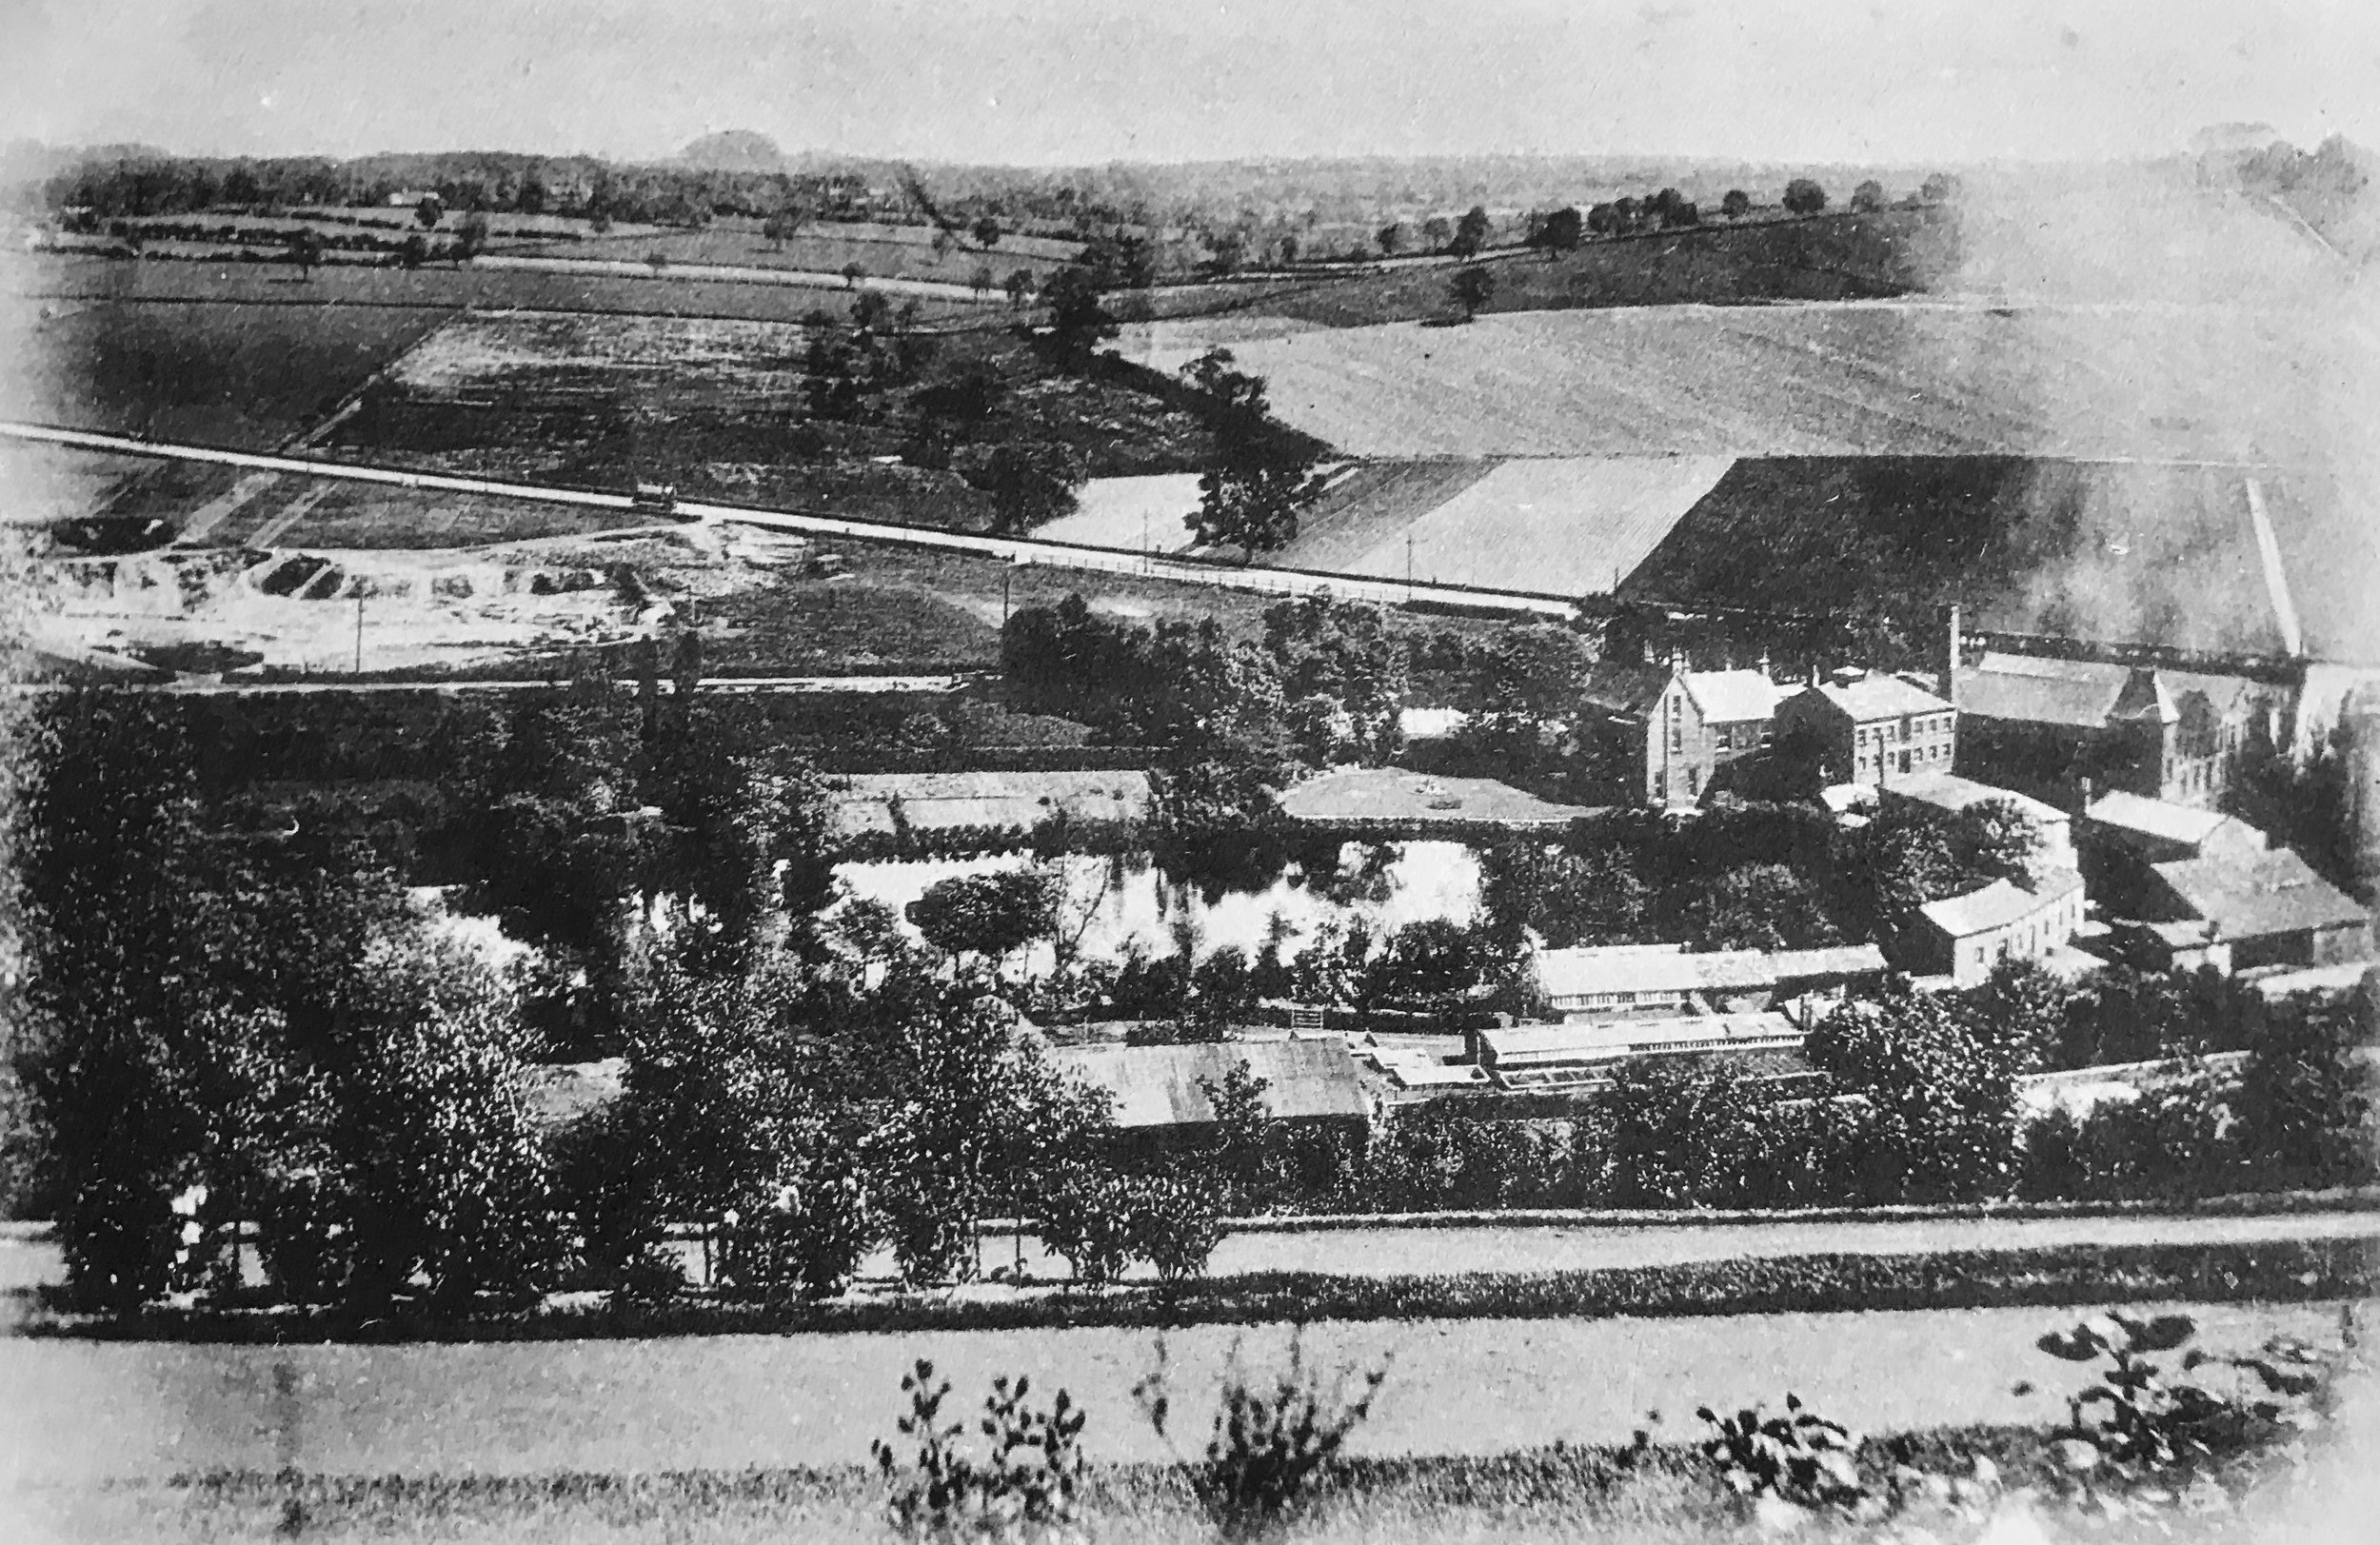 Groves Mill and Pond [demolished], circa 1890